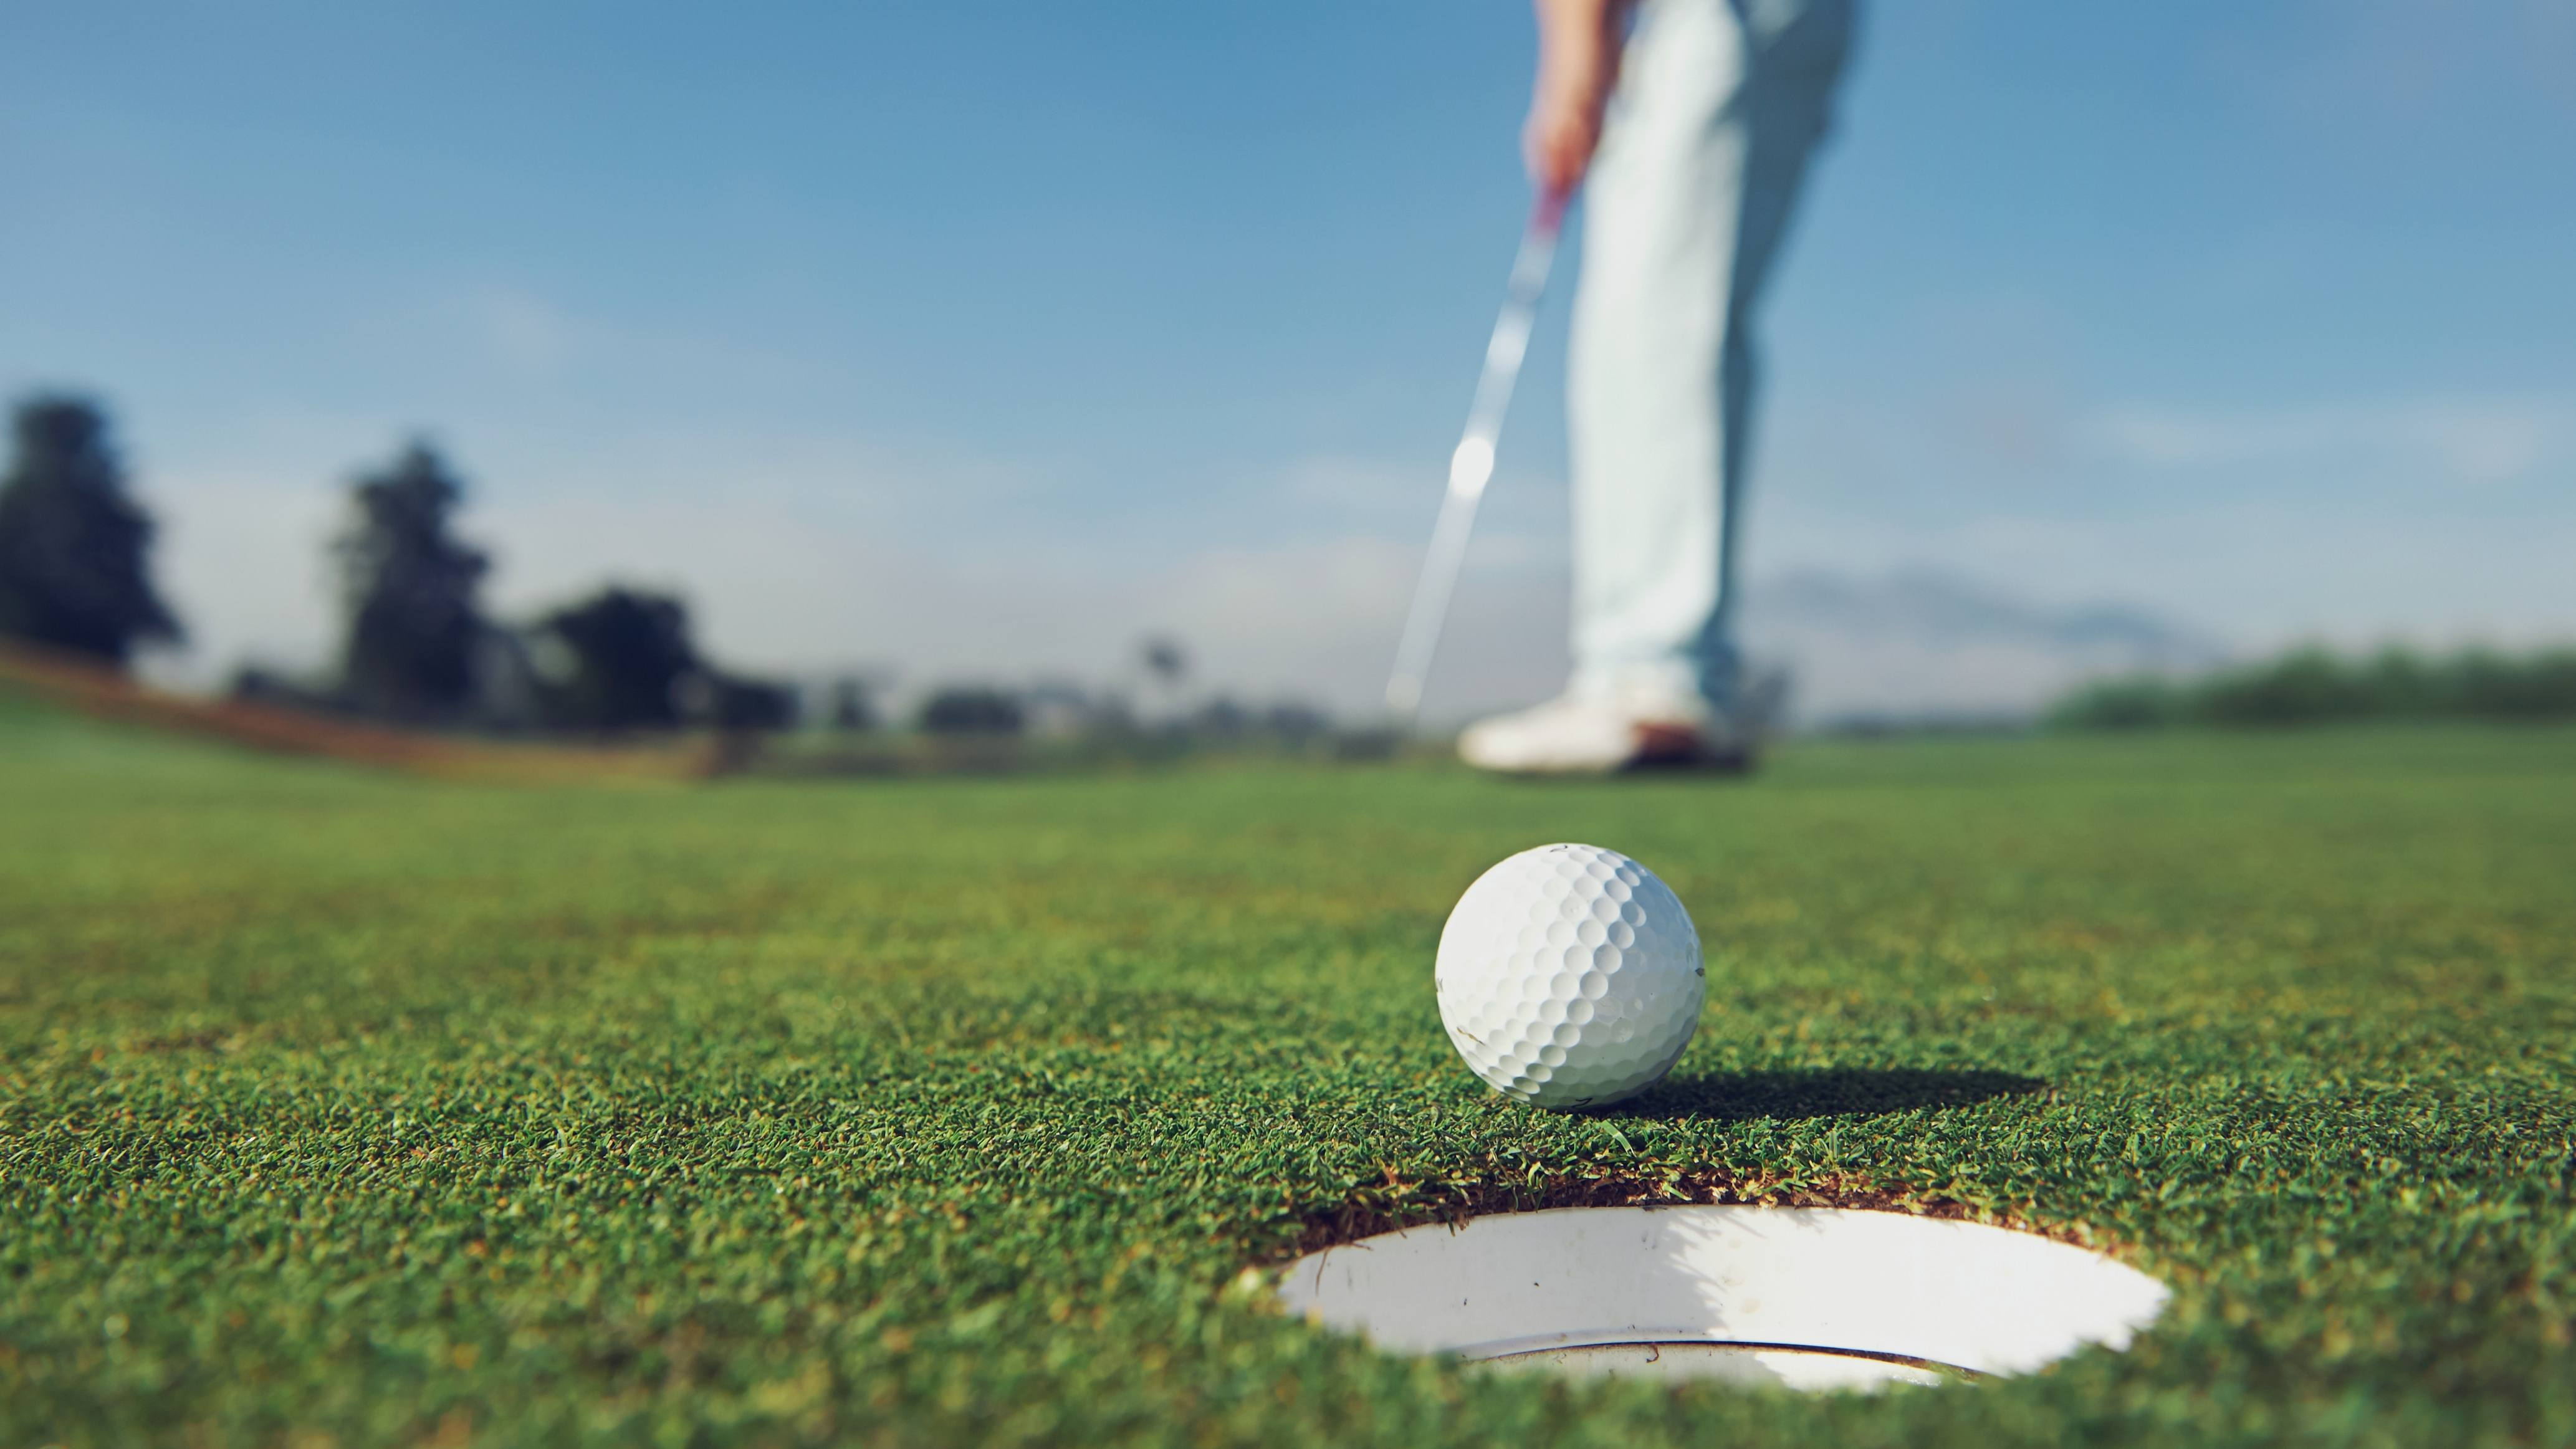 close up of a man hitting a golf ball, putting it in the hole